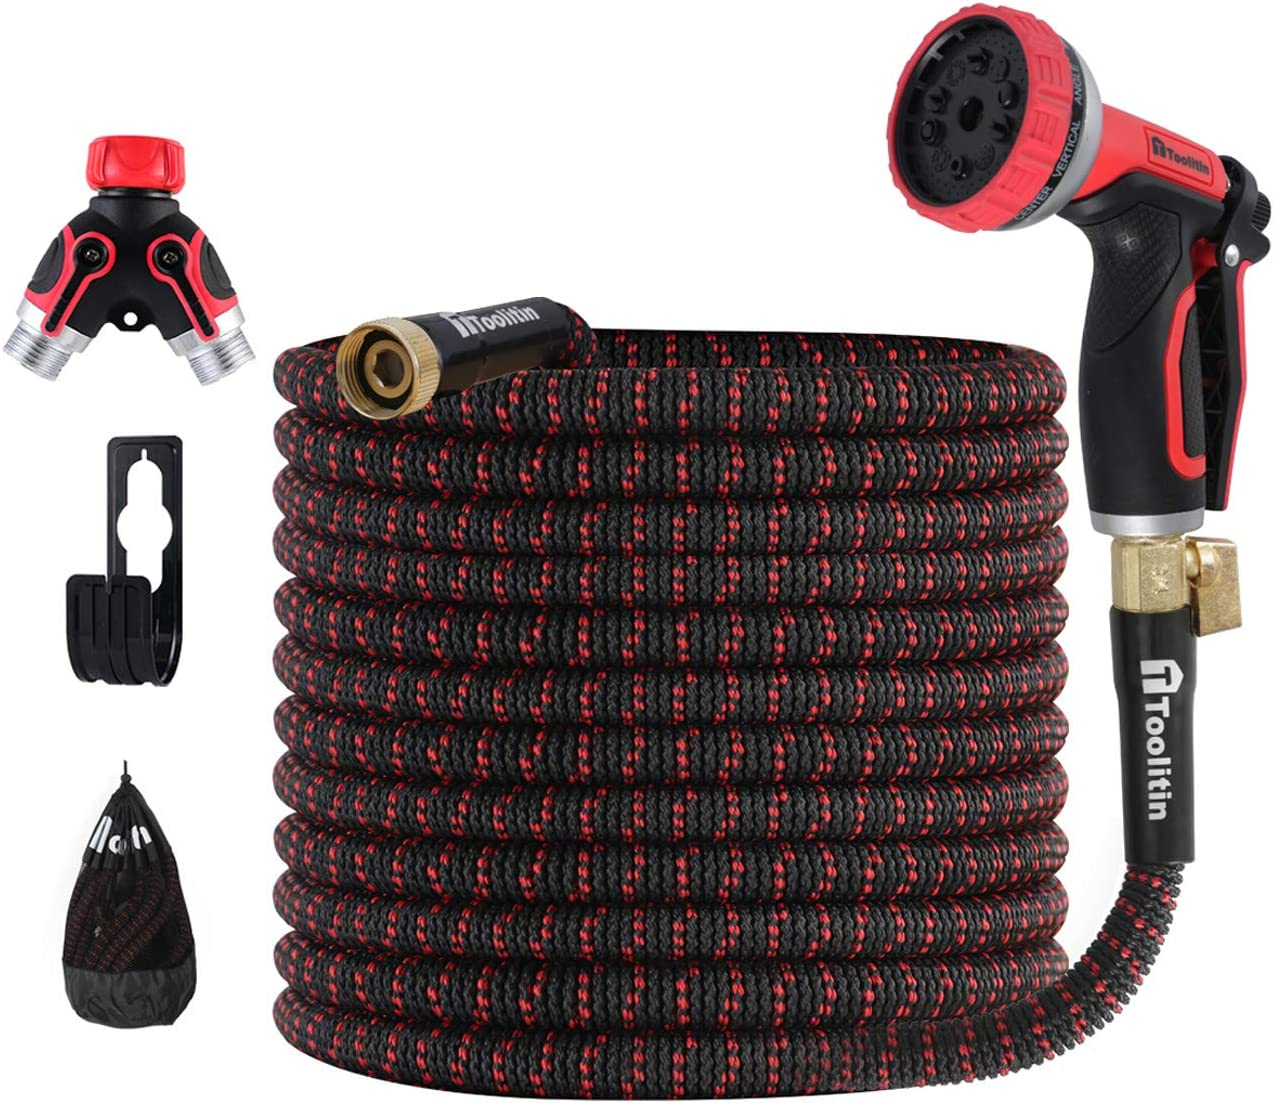 TOOLITIN 100 FT Garden Hose with Splitter & 10 Function High Pressure Nozzle, Lightweight Expandable Water Hose, Extra Strength with 3/4 Inch Aluminium Fittings & Double Latex Core-Leak Resistan